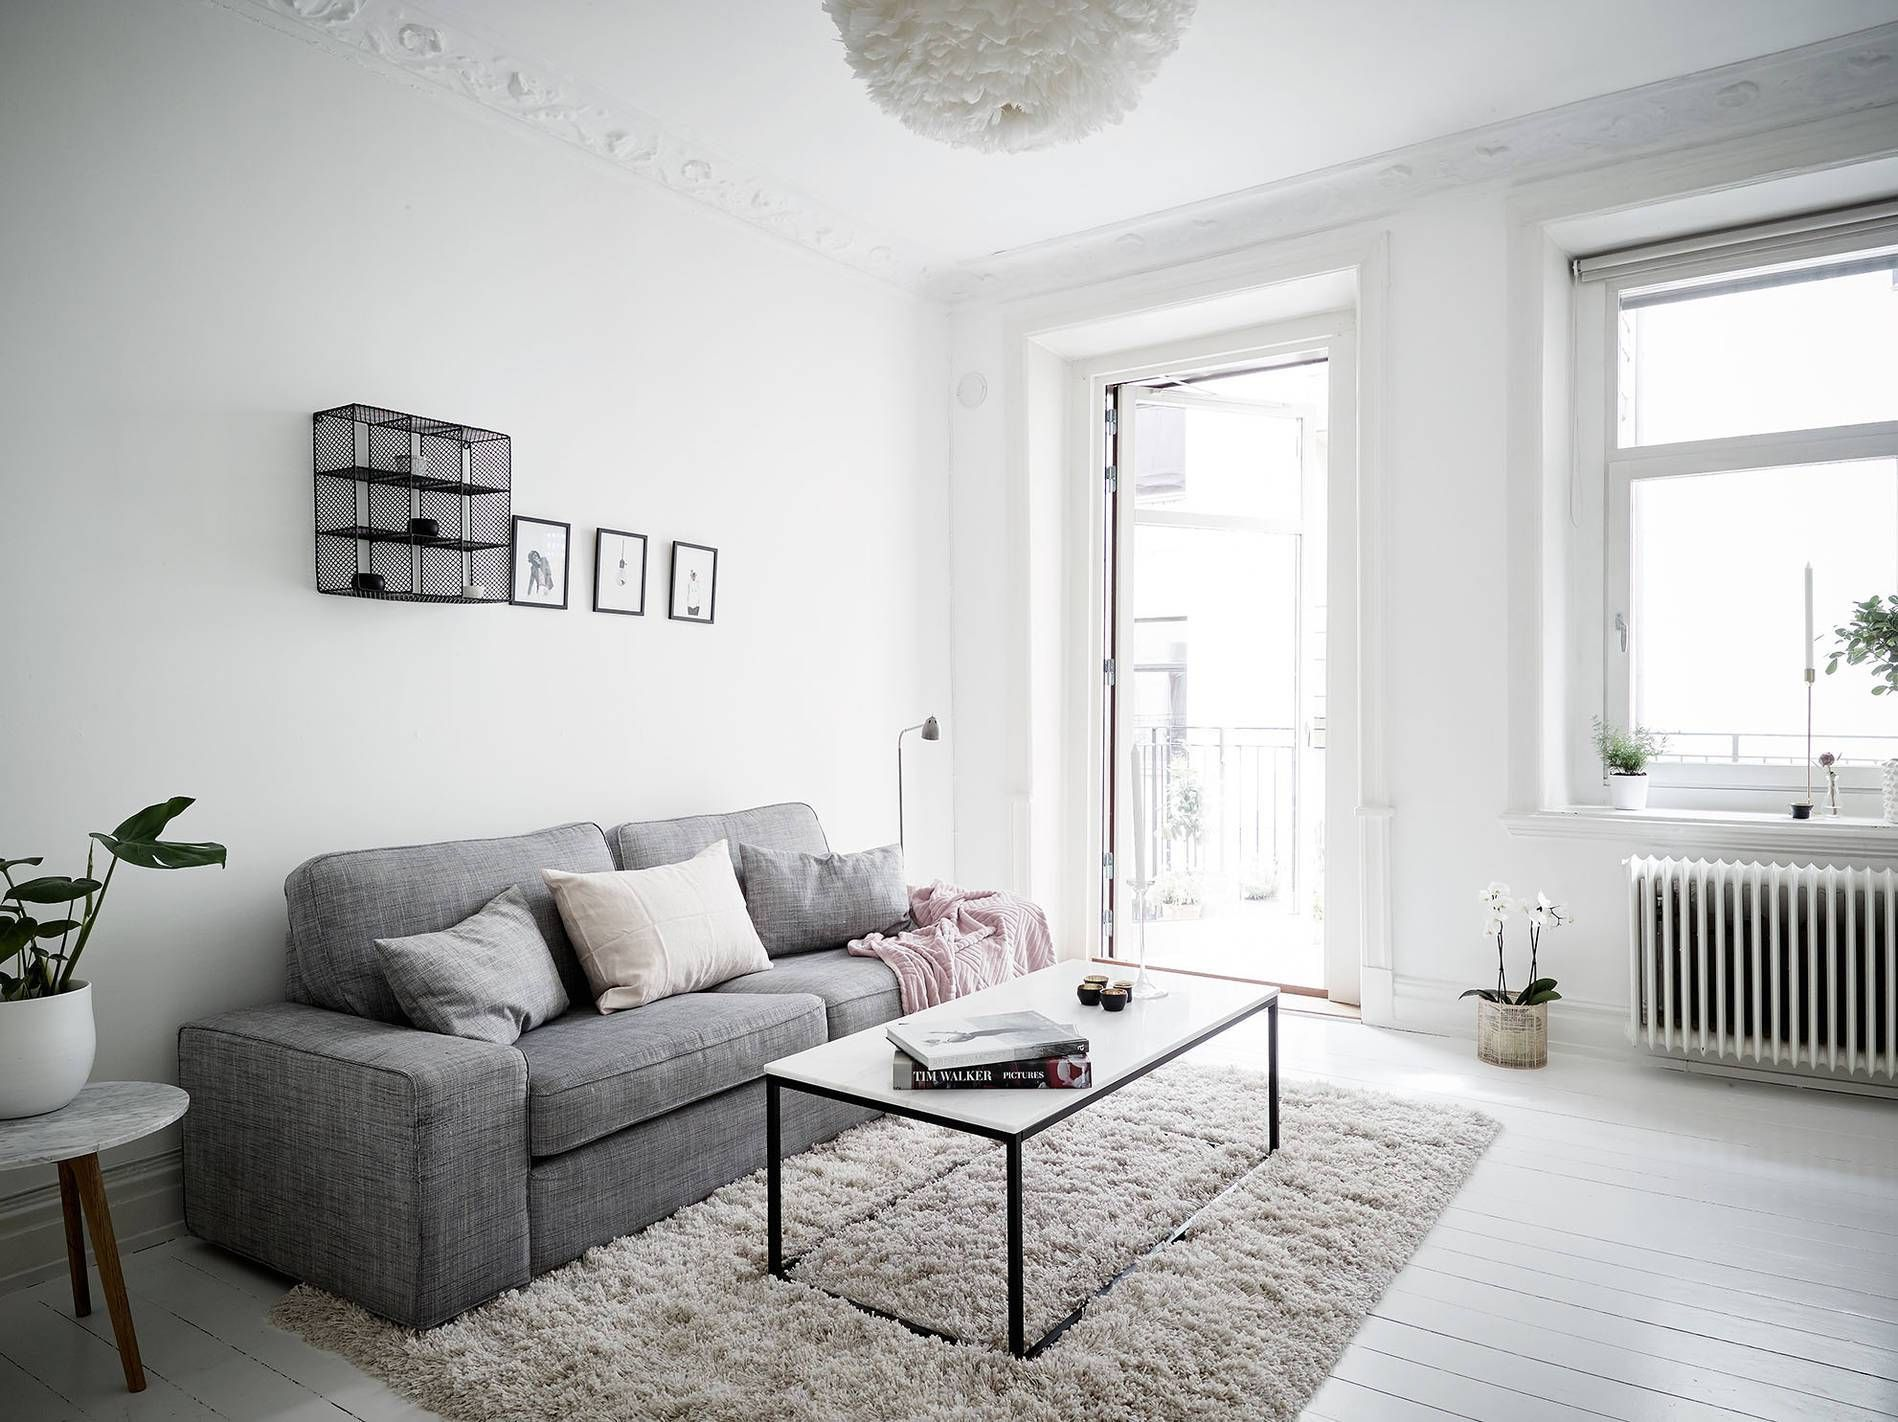 Refrescar una decoración con el color blanco | Studio apartment and ...